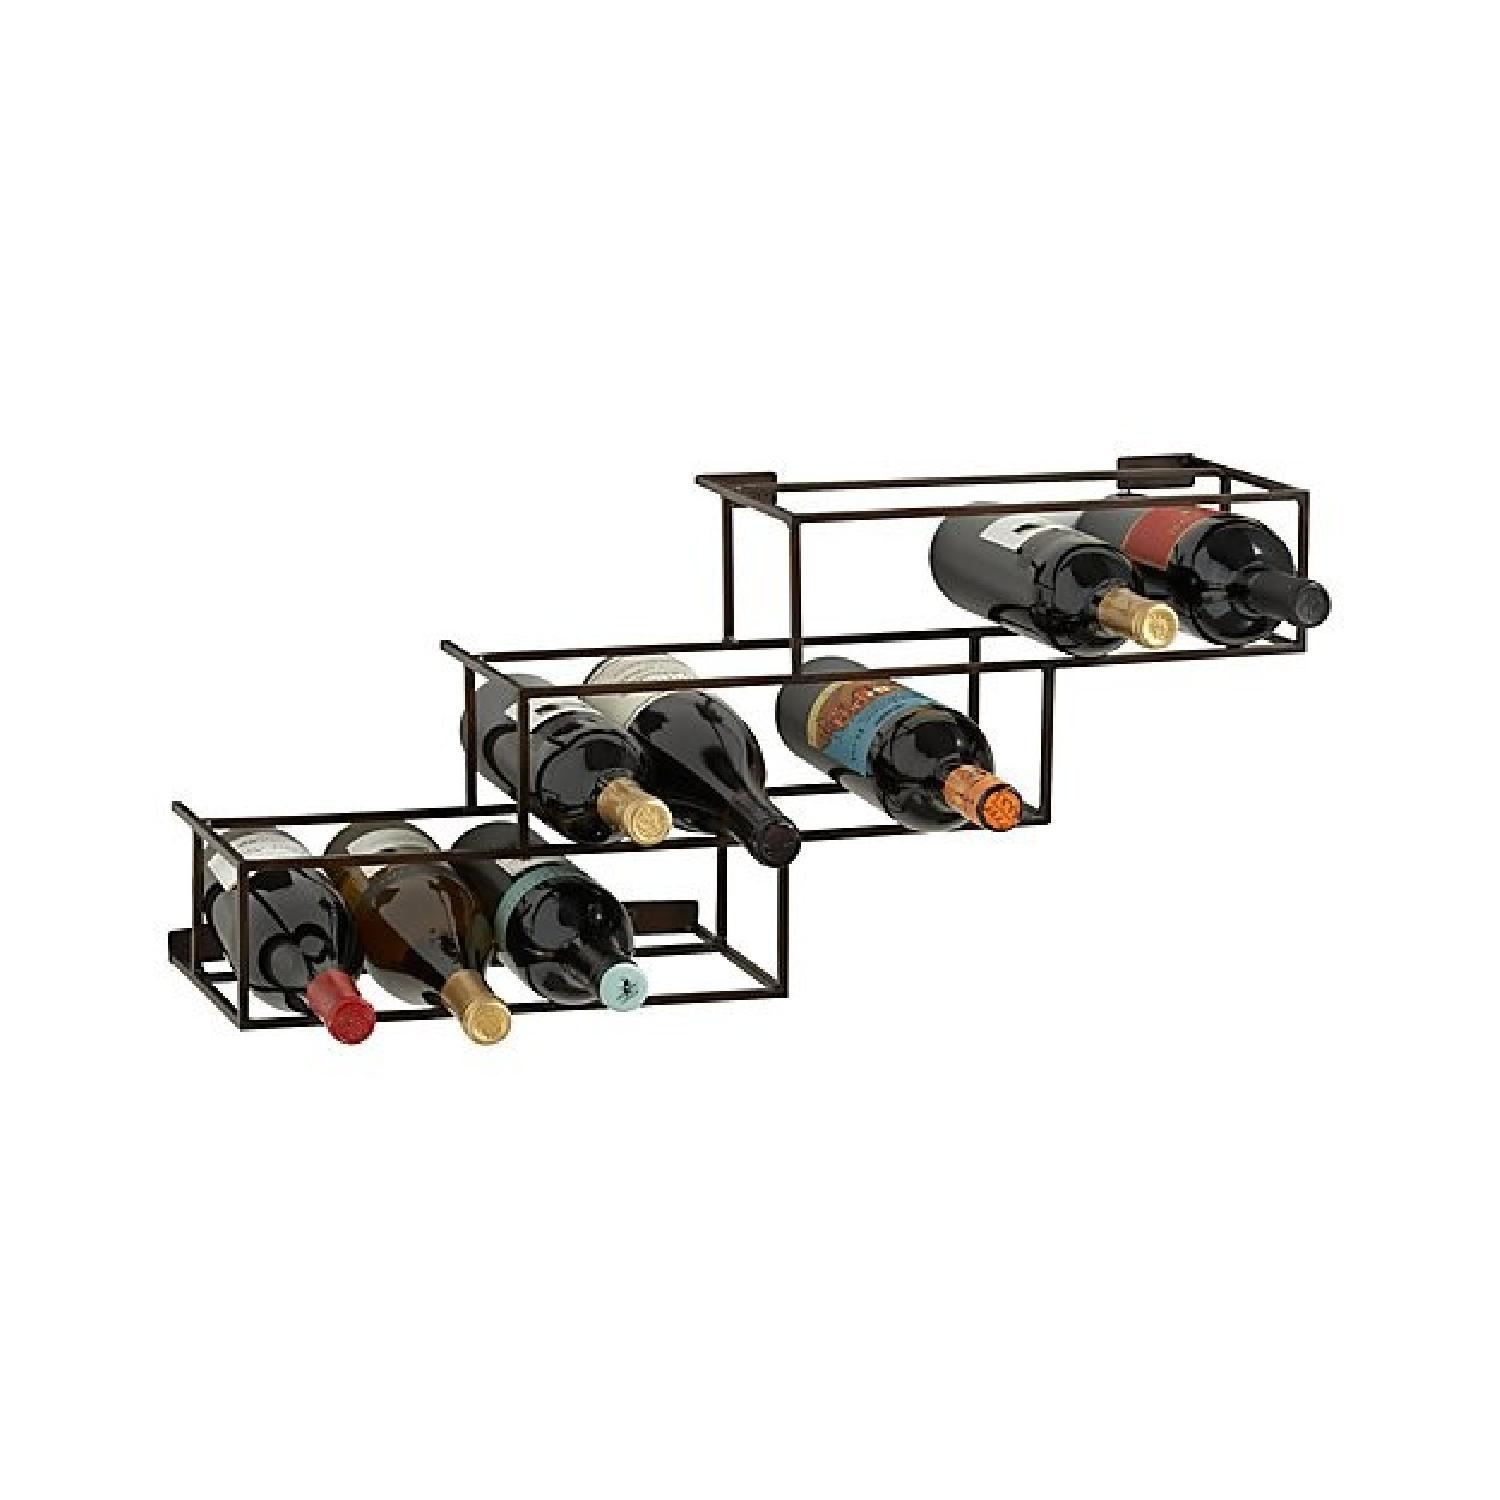 Crate & Barrel Matrix 12 Bottle Wine Racks